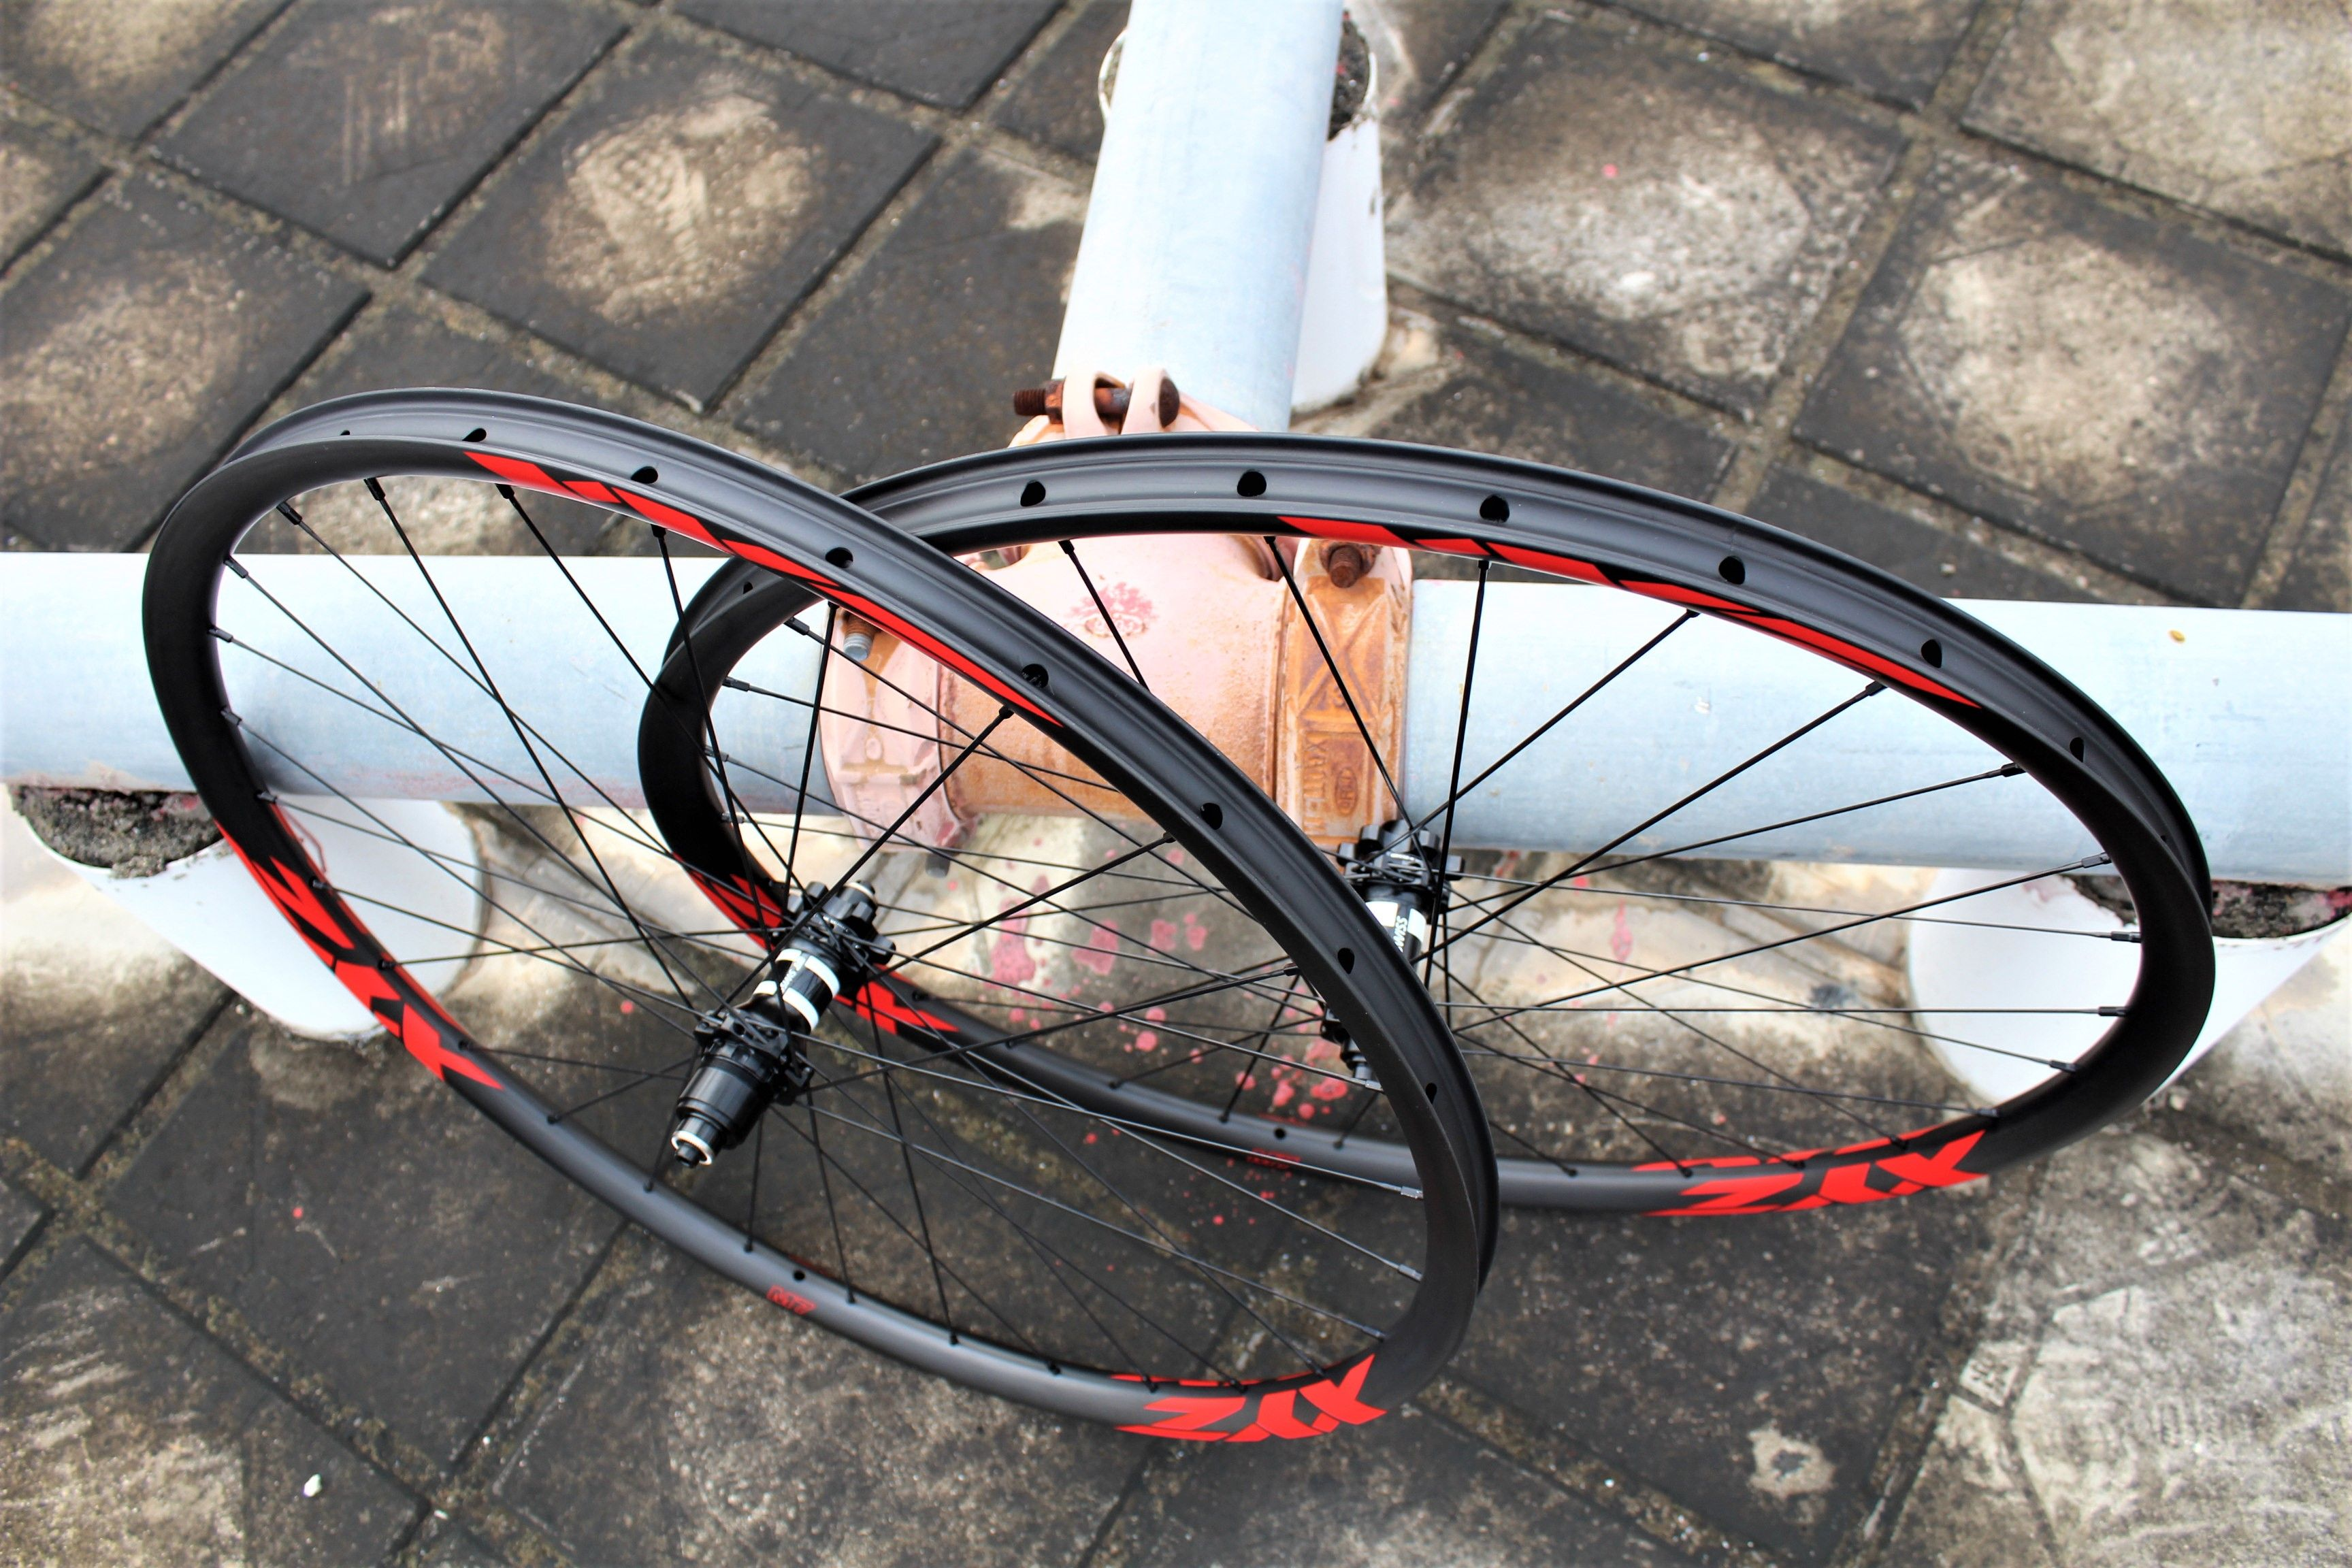 Specific Wheels For Mountain Bike With Xyz T800 Carbon Rims And